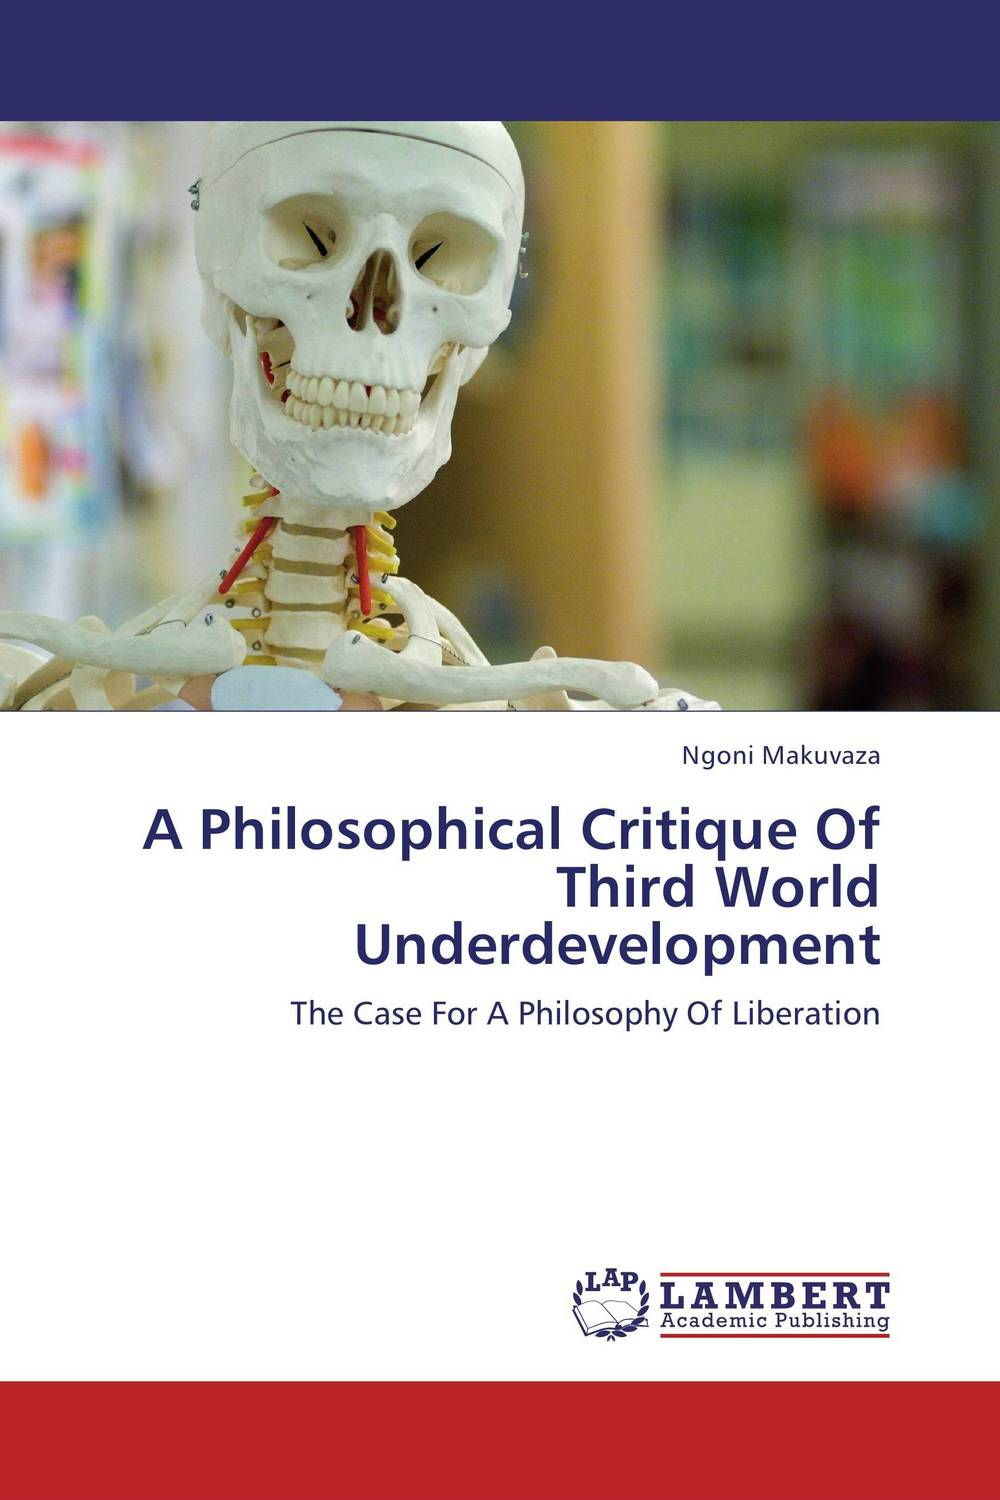 A Philosophical Critique Of Third World Underdevelopment seeing things as they are